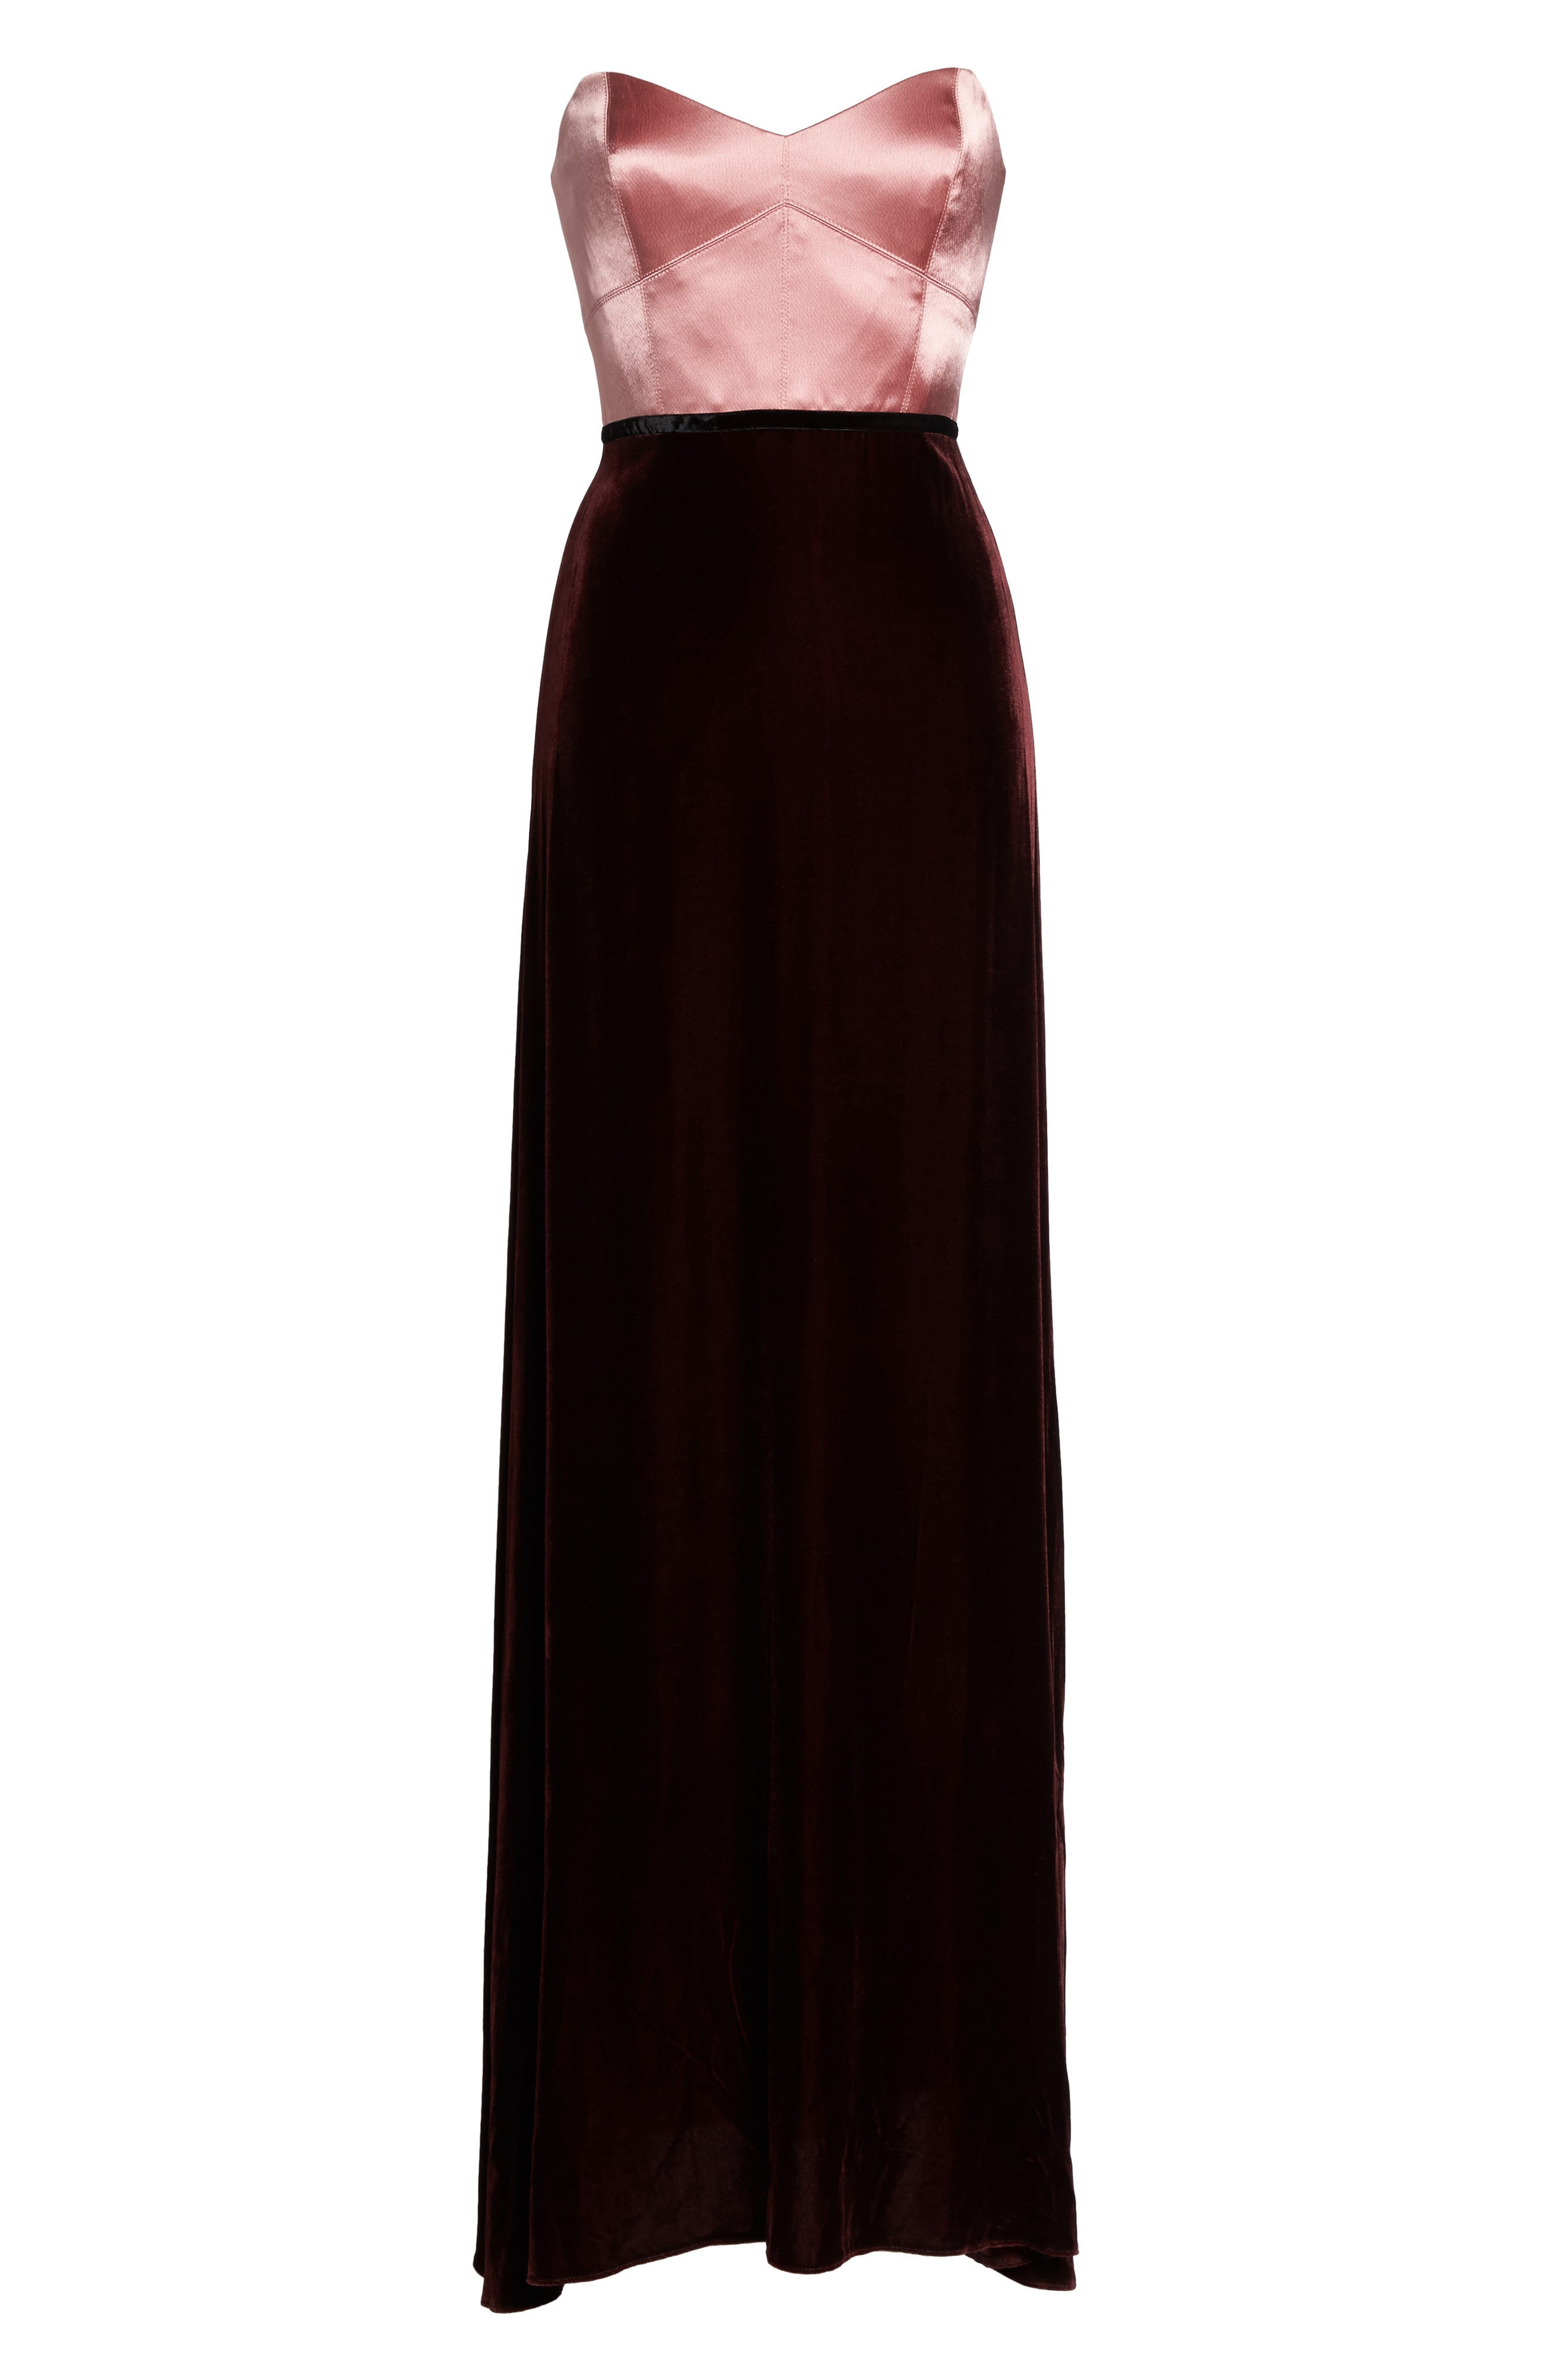 Strapless Satin & Velvet Gown,                             Alternate thumbnail 6, color,                             Prim Rose/ Raisin/ Black